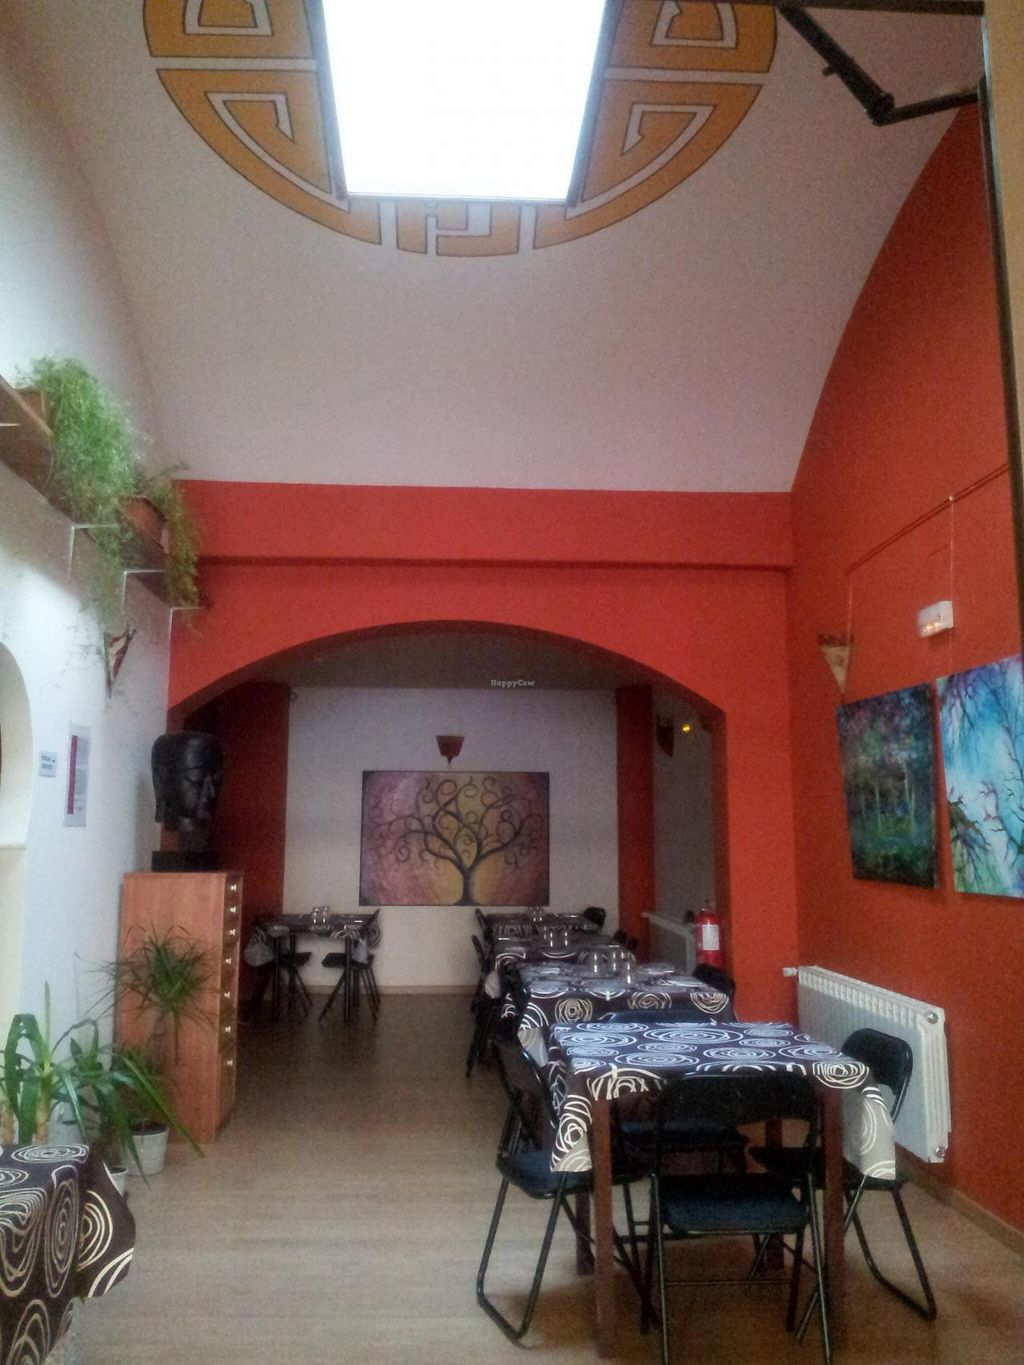 "Photo of Baratza Kafea  by <a href=""/members/profile/tina%20macrotina"">tina macrotina</a> <br/>Beautiful restaurant and unique in Pamplona. Near of the river and 5 minutes from the old city center. Lunch time from 13:15 to 15:45. Food to take away. Phone +34 948046625 <br/> June 8, 2014  - <a href='/contact/abuse/image/47622/71661'>Report</a>"